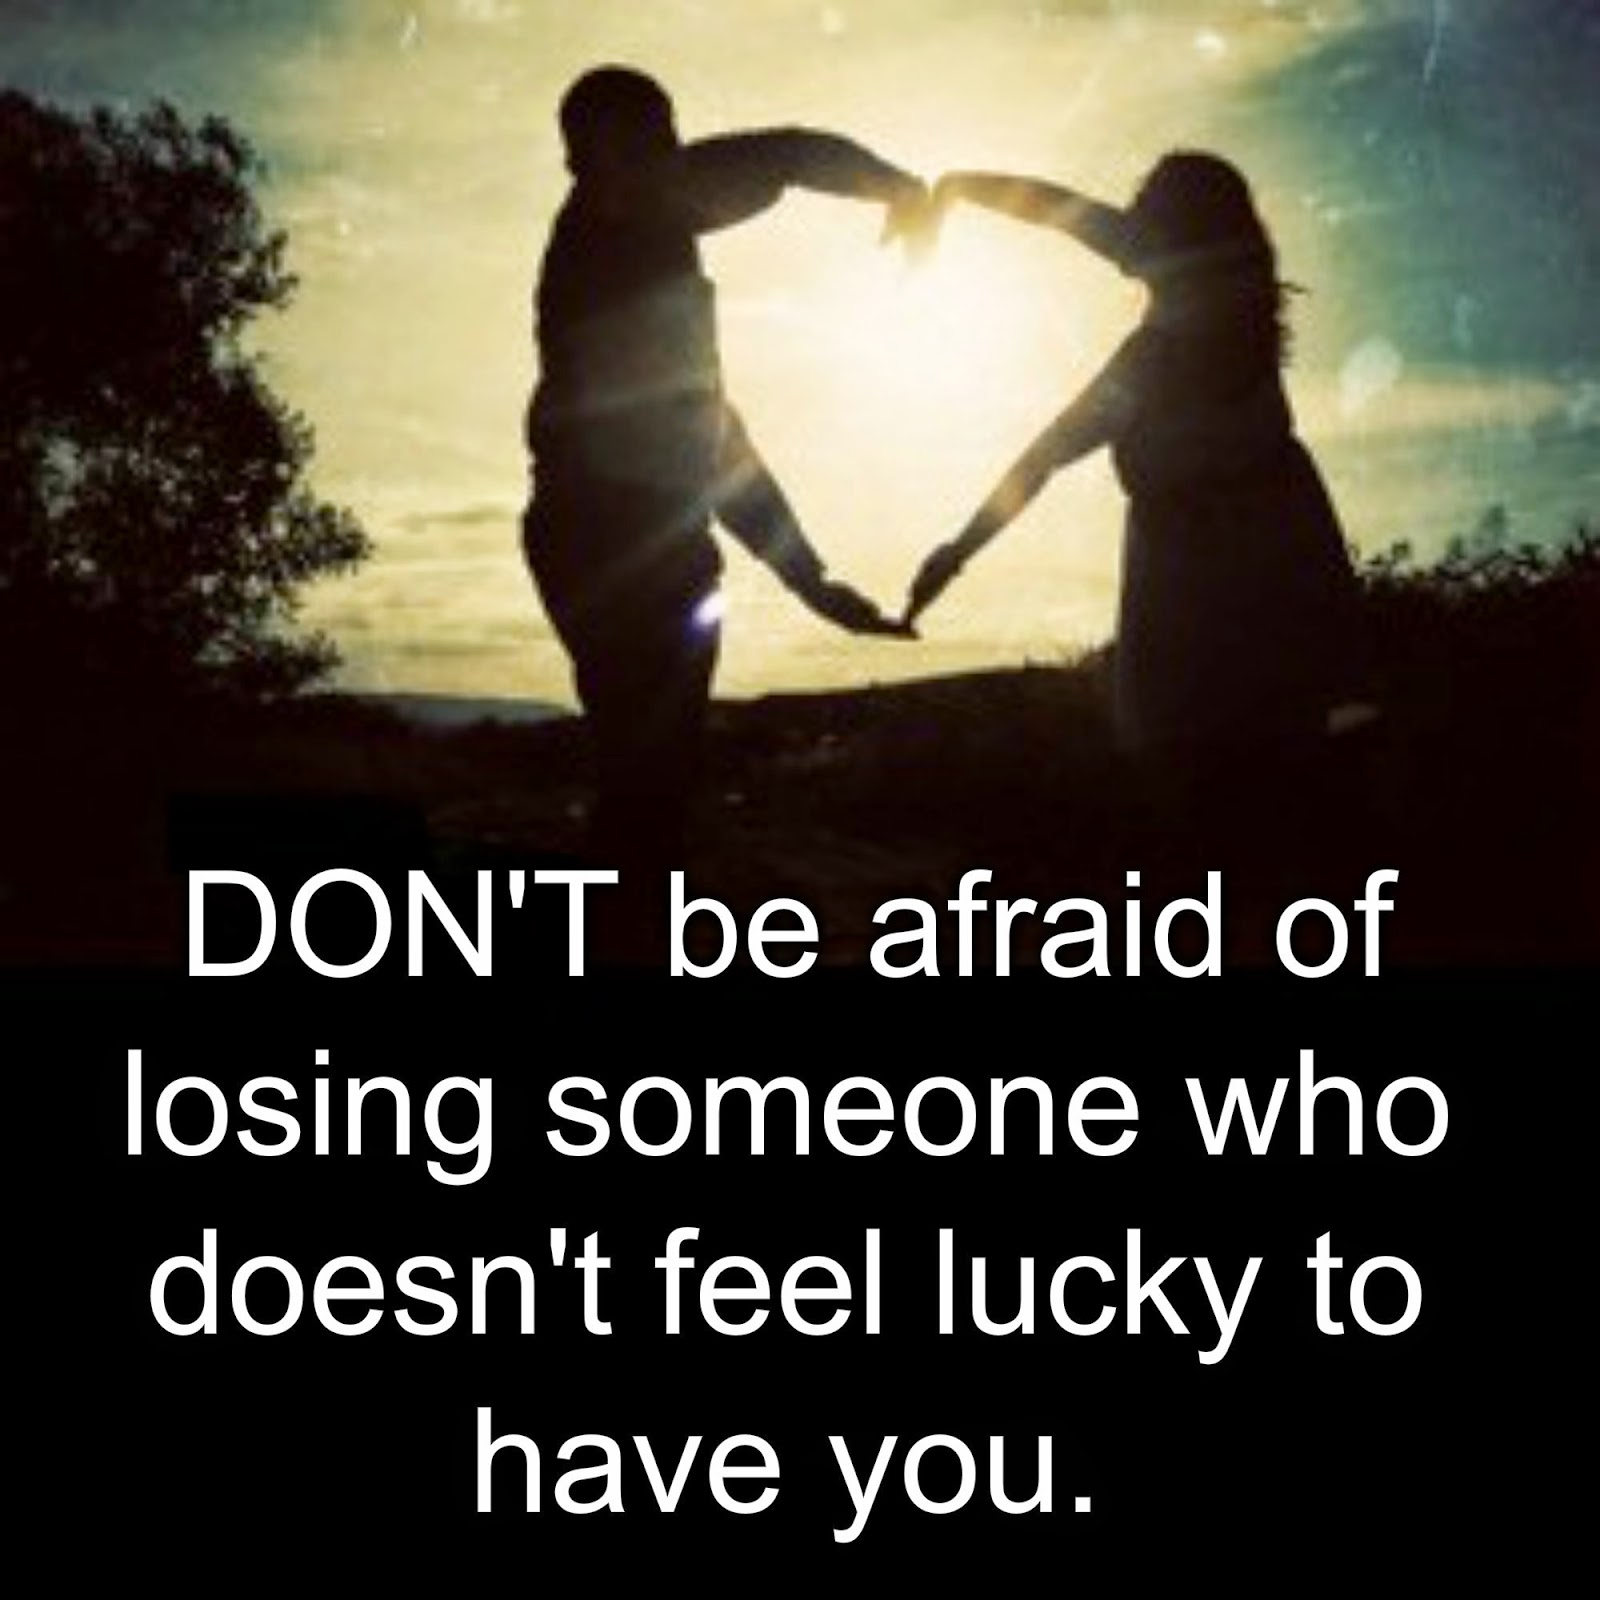 Awesome Quotes: Dont be afraid of losing someone